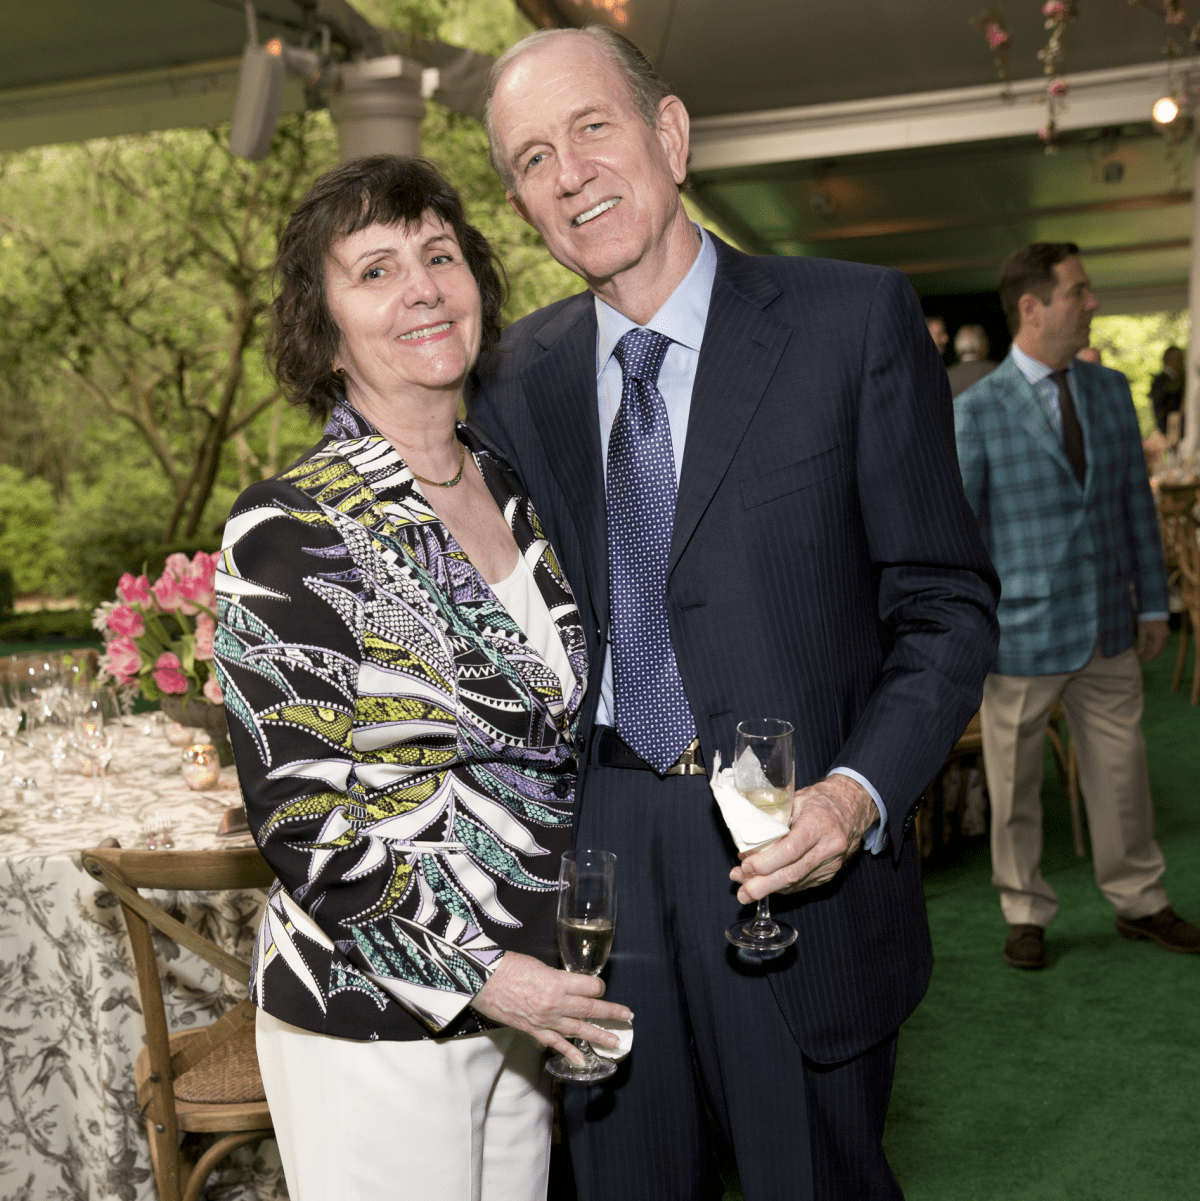 Bayou Bend Garden Party 2017 Leslie and Brad Bucher